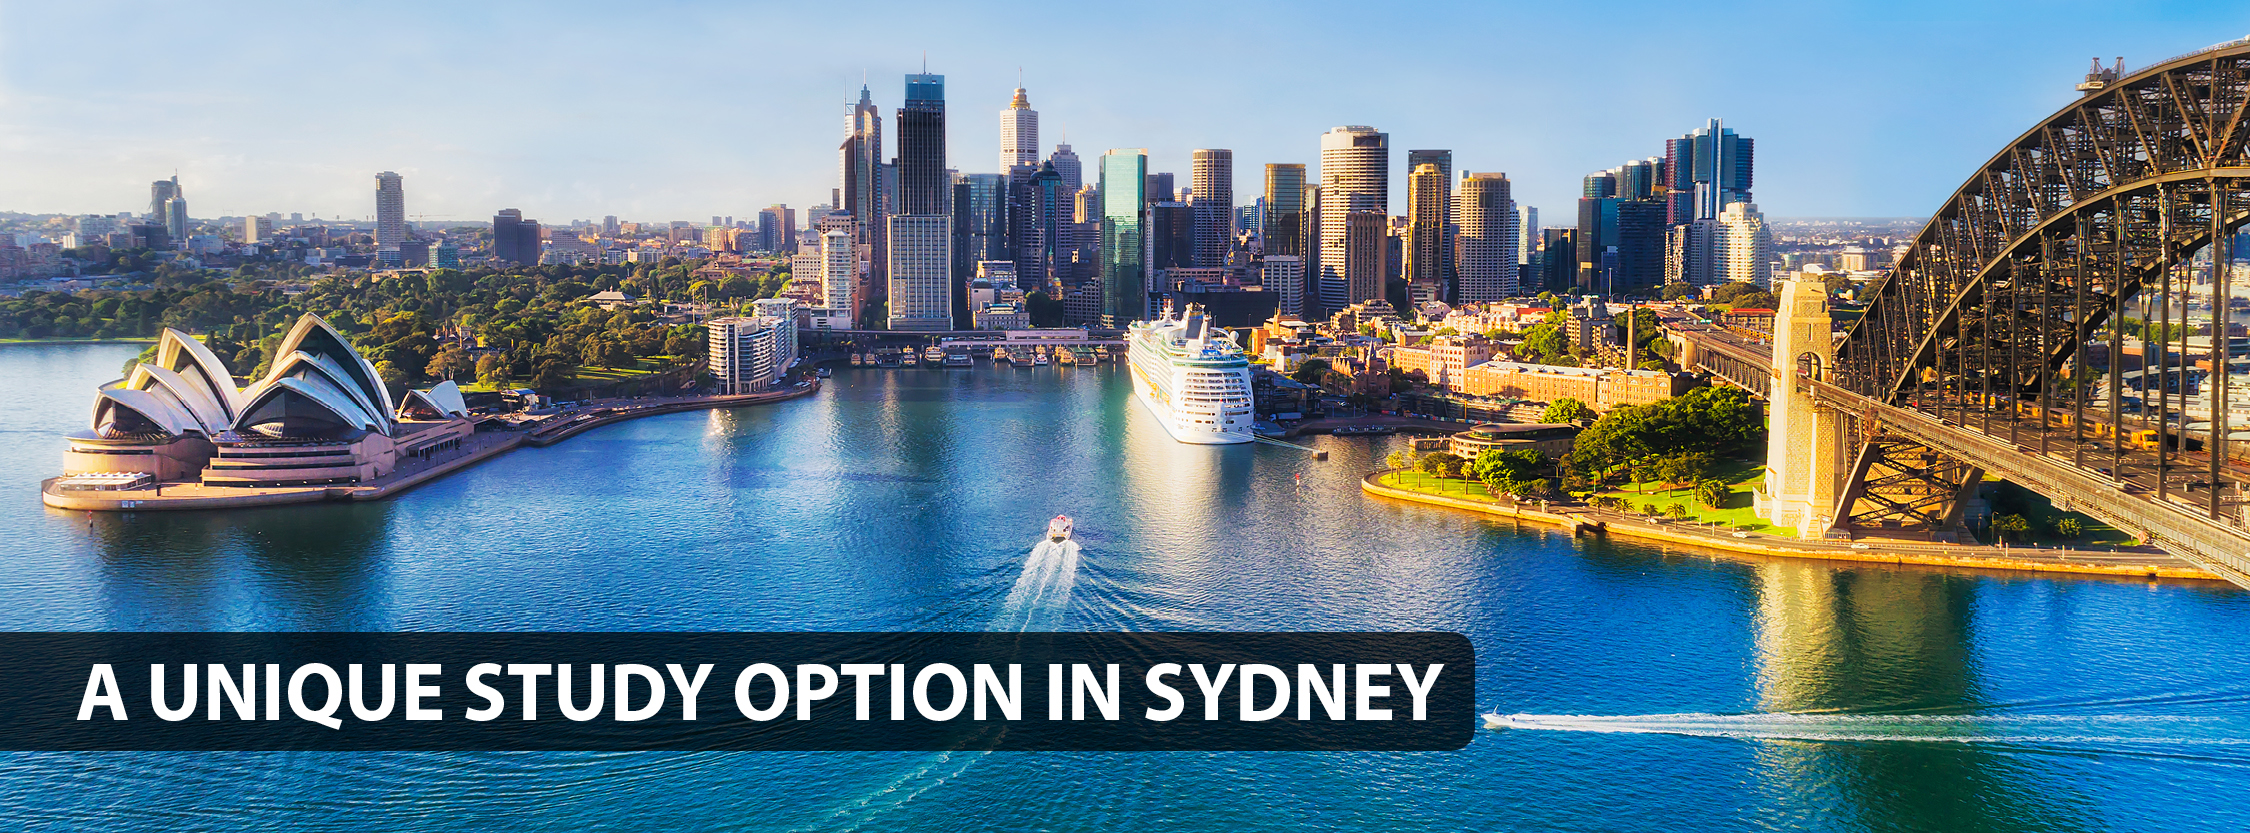 A unique study option in Sydney